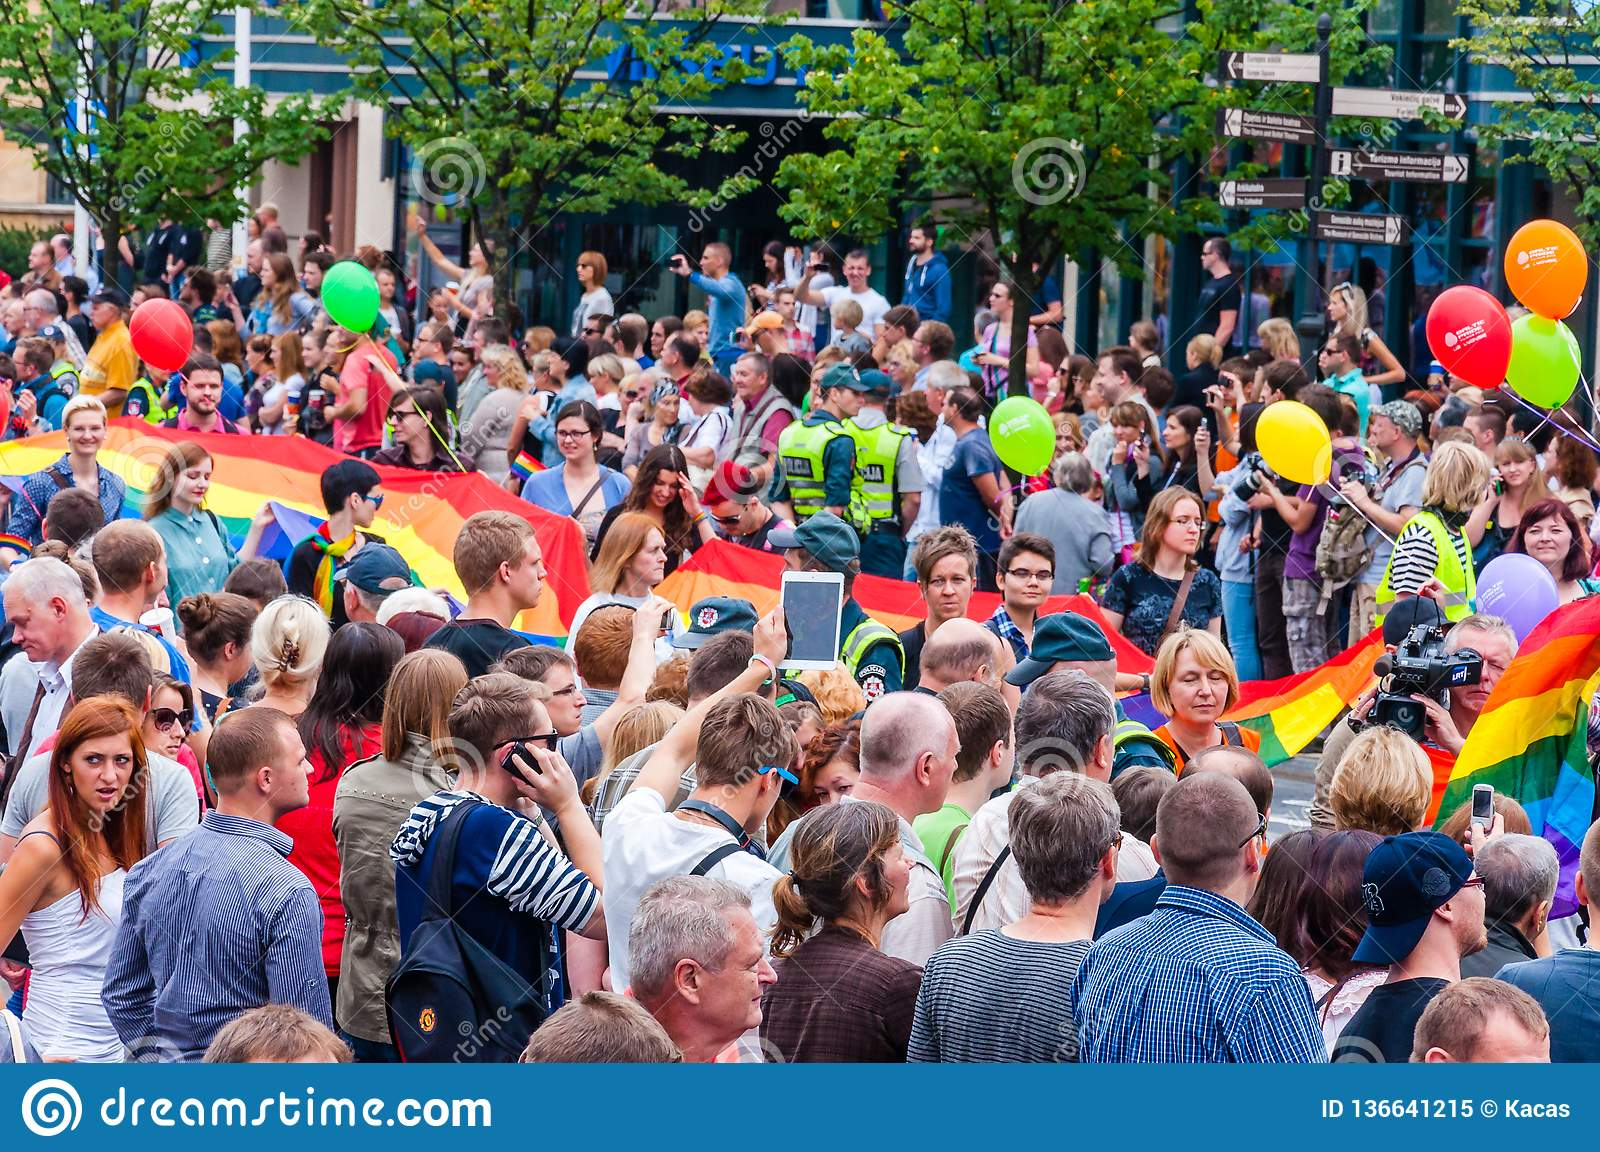 Pride parade in action. Crowd of watchers and demonstrators with rainbow flags. Event celebrating lesbian, gay, bisexual,